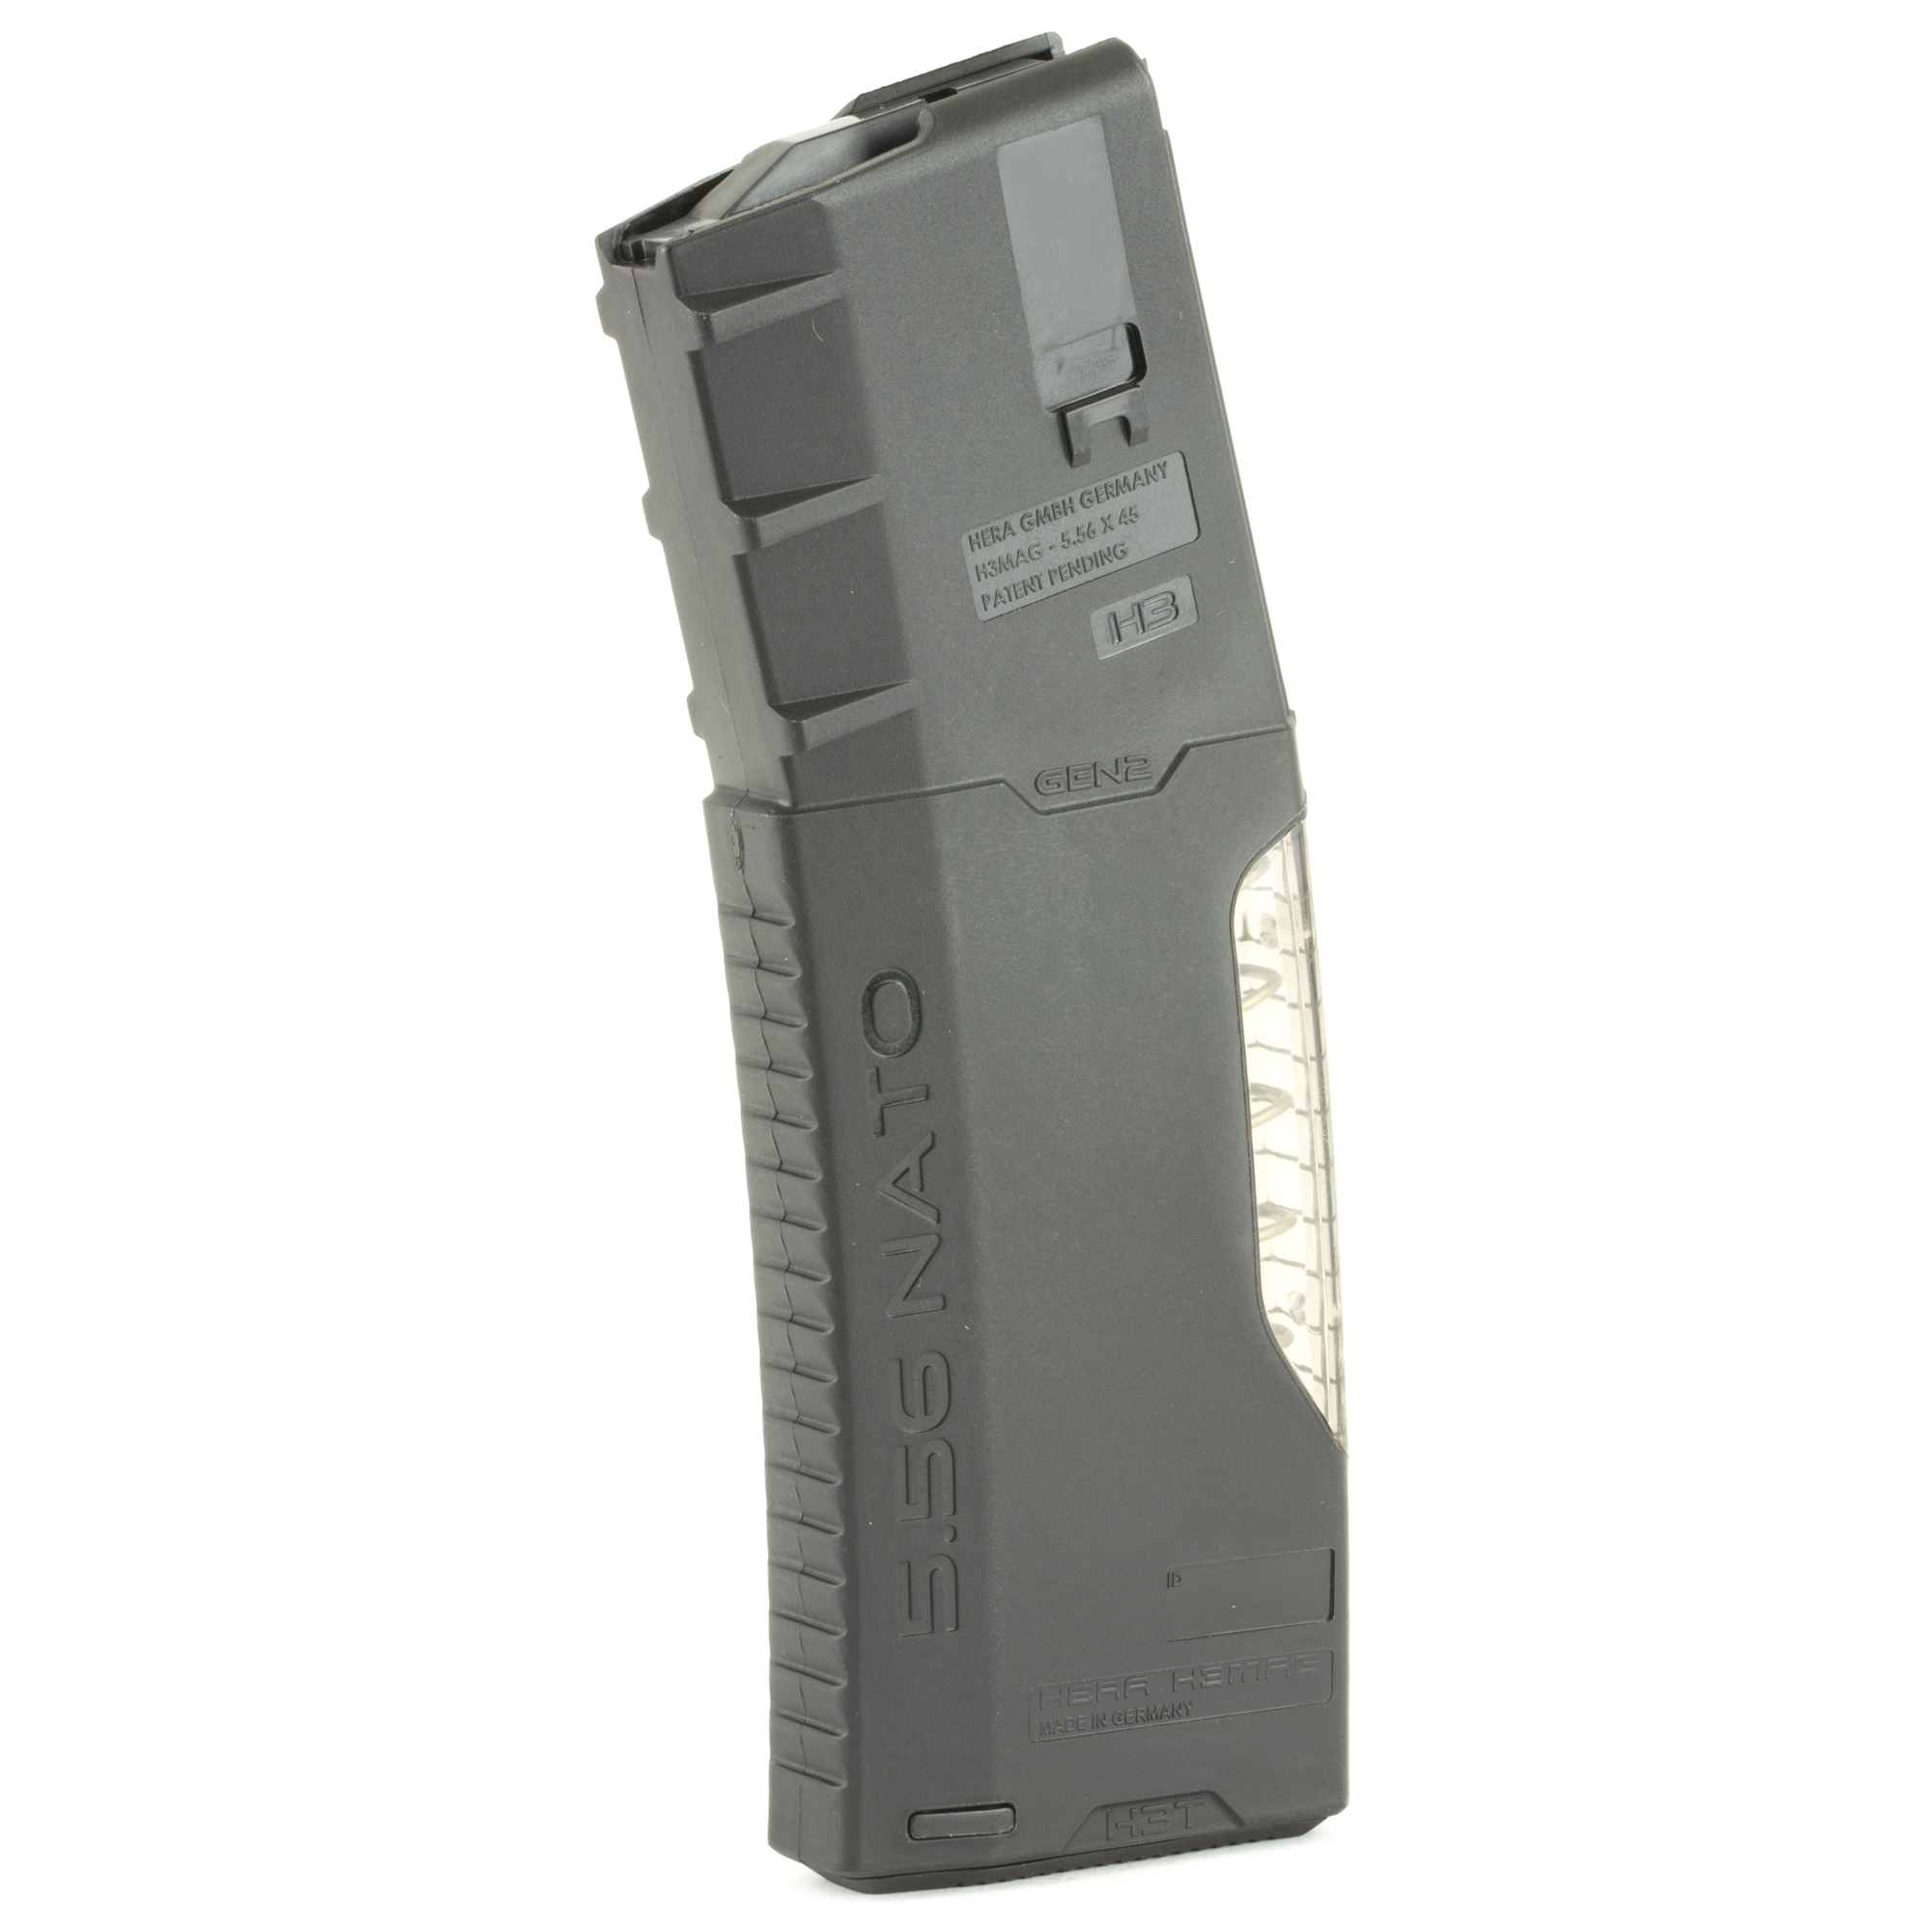 """The HERA H3T Gen-2 magazines feature a transparent frame allowing you to quickly check your round count. Constructed of high impact reinforced polymer with superior springs"""" you can expect superb function from HERA magazines."""